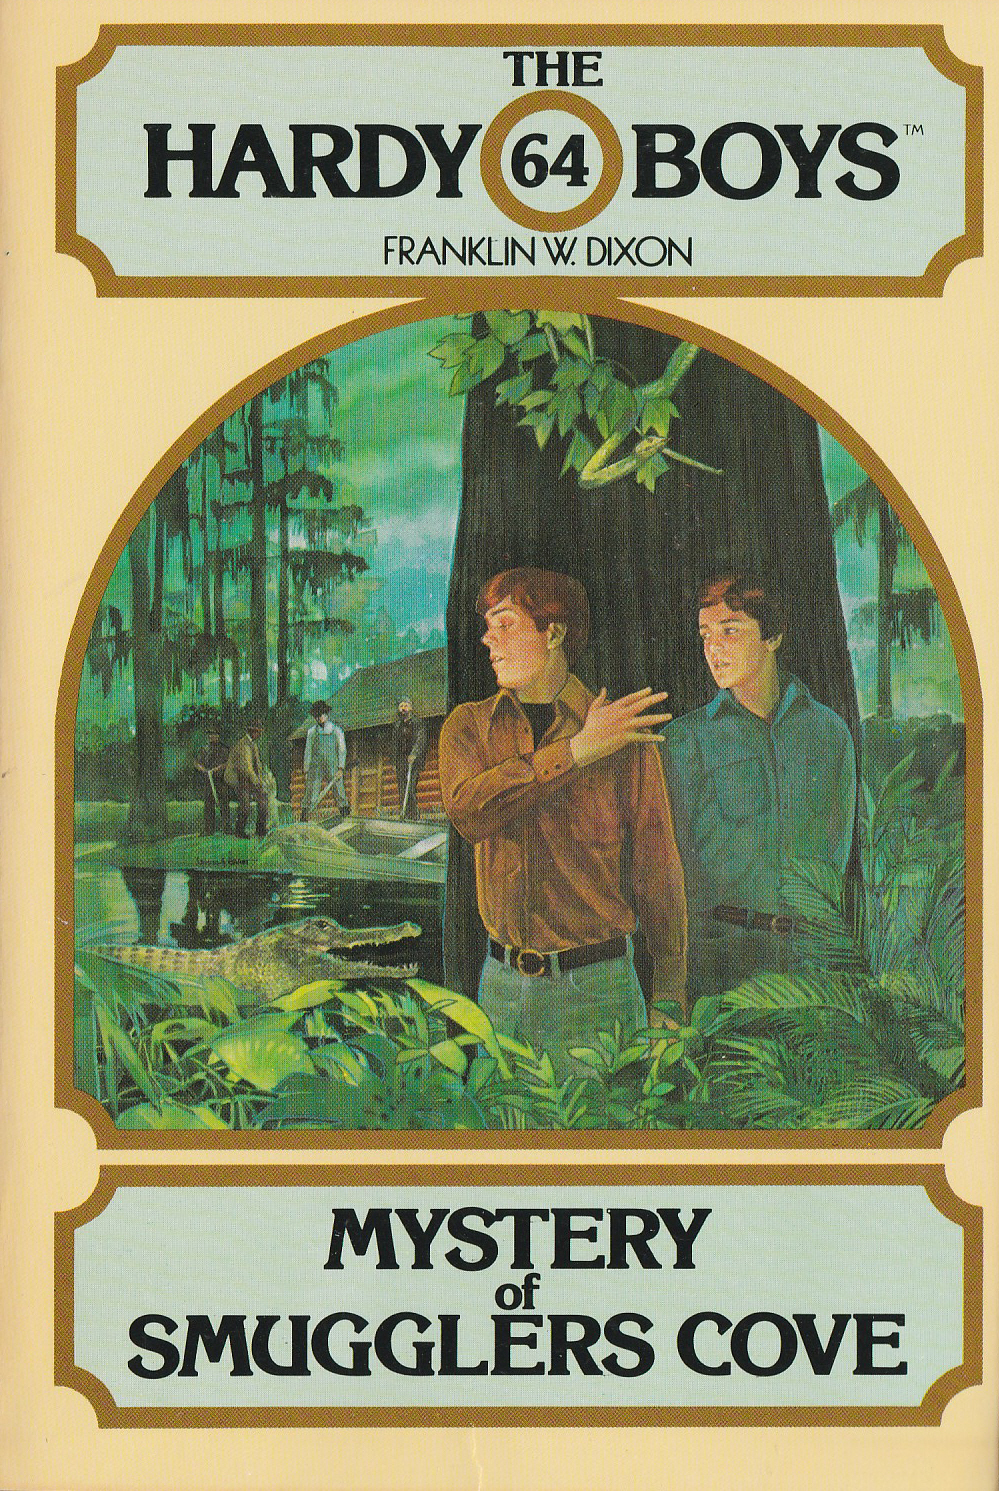 hardy boys mystery books Why do the hardy boys books continue to line the shelves of libraries and bookstores, engage generation after generation.